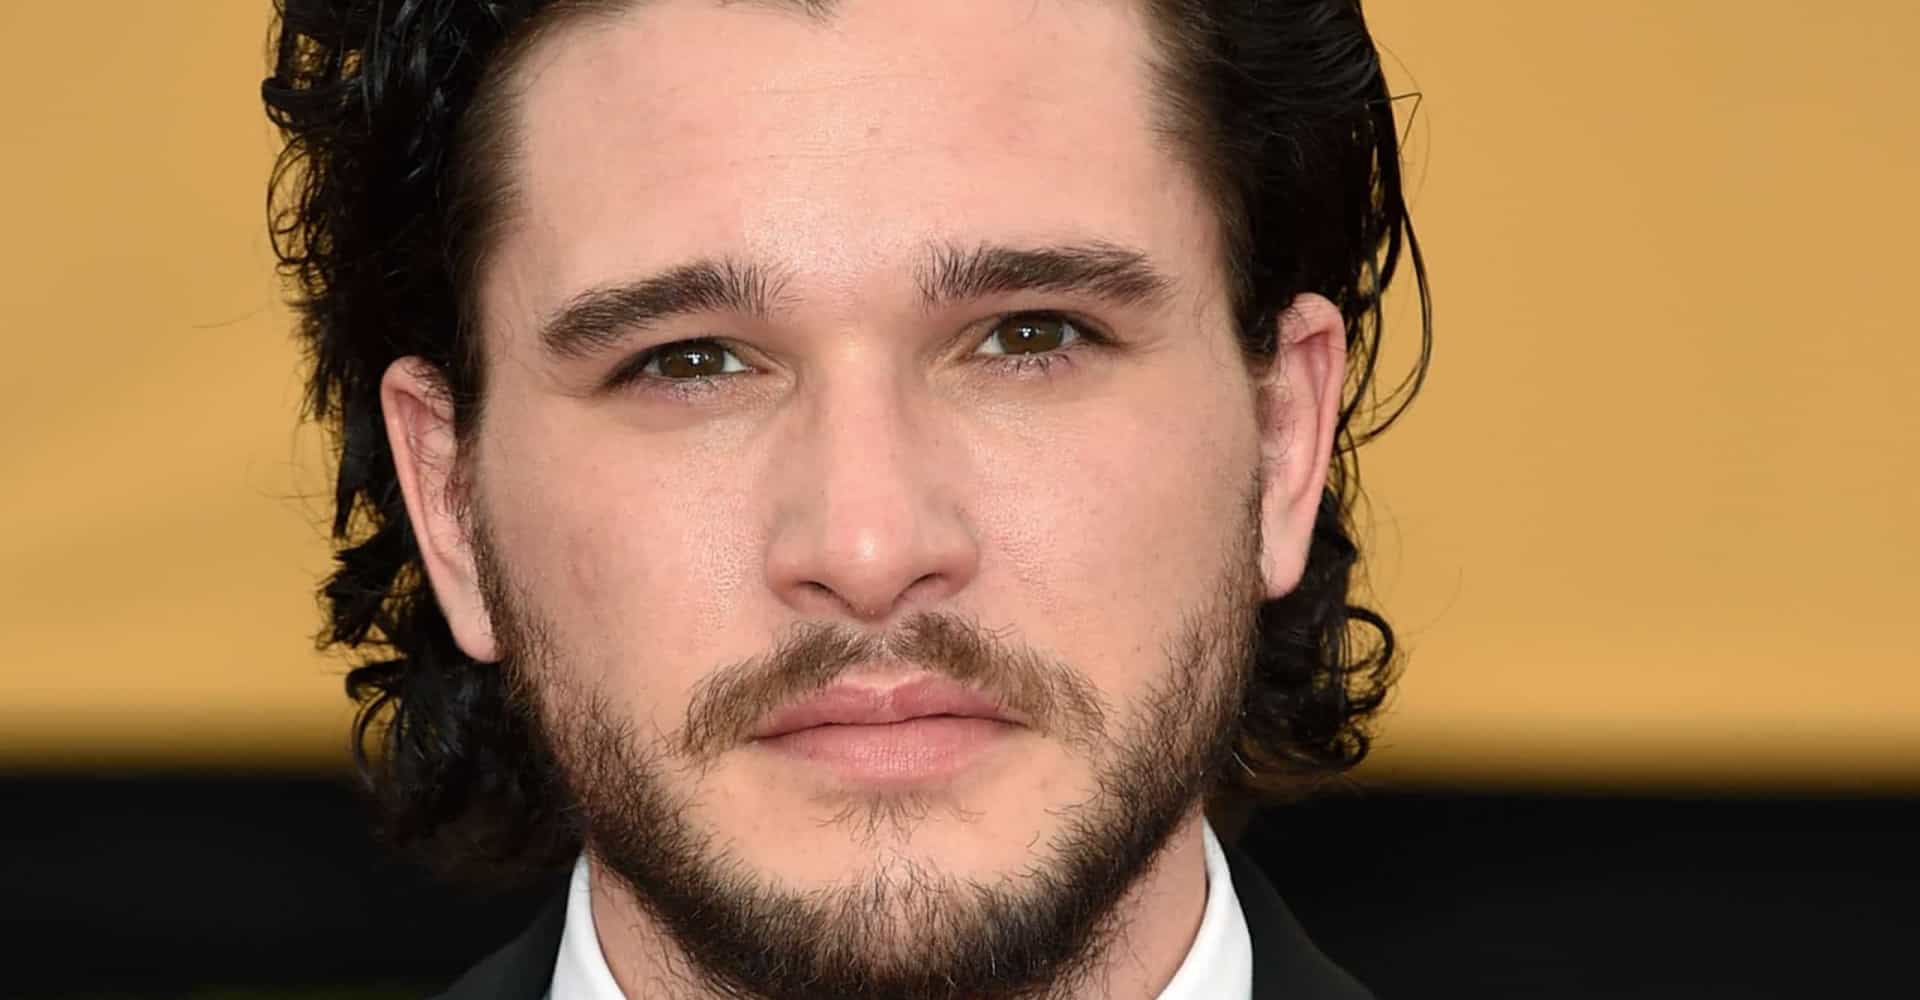 Hilarious and weird facts about the hunky Kit Harington